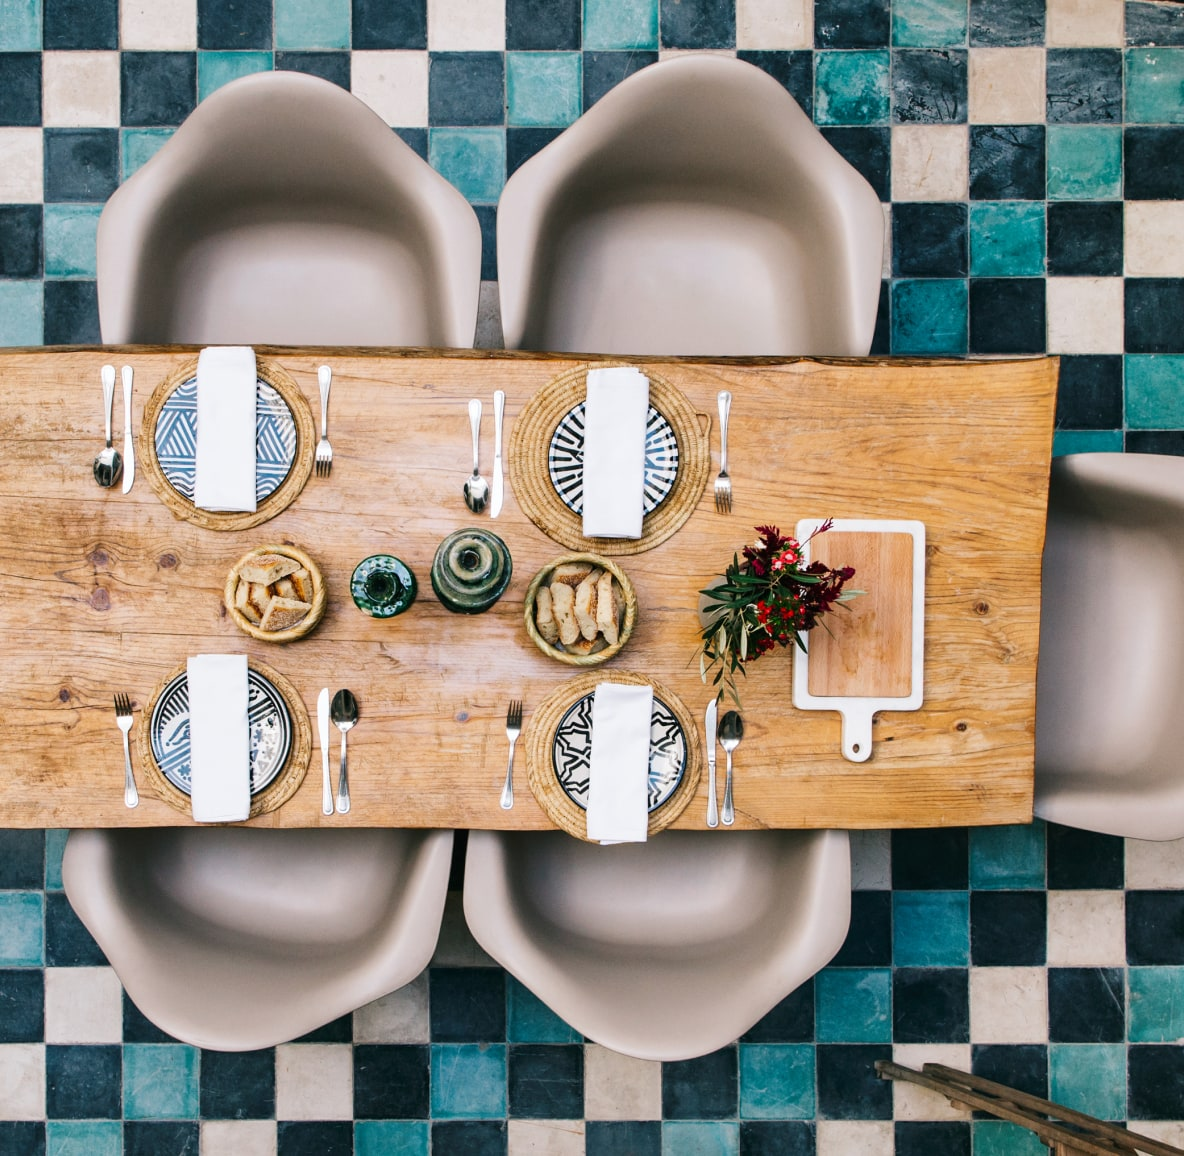 Overhead view of elegant tablescape featuring food and cutlery amidst a checkered flooring pattern